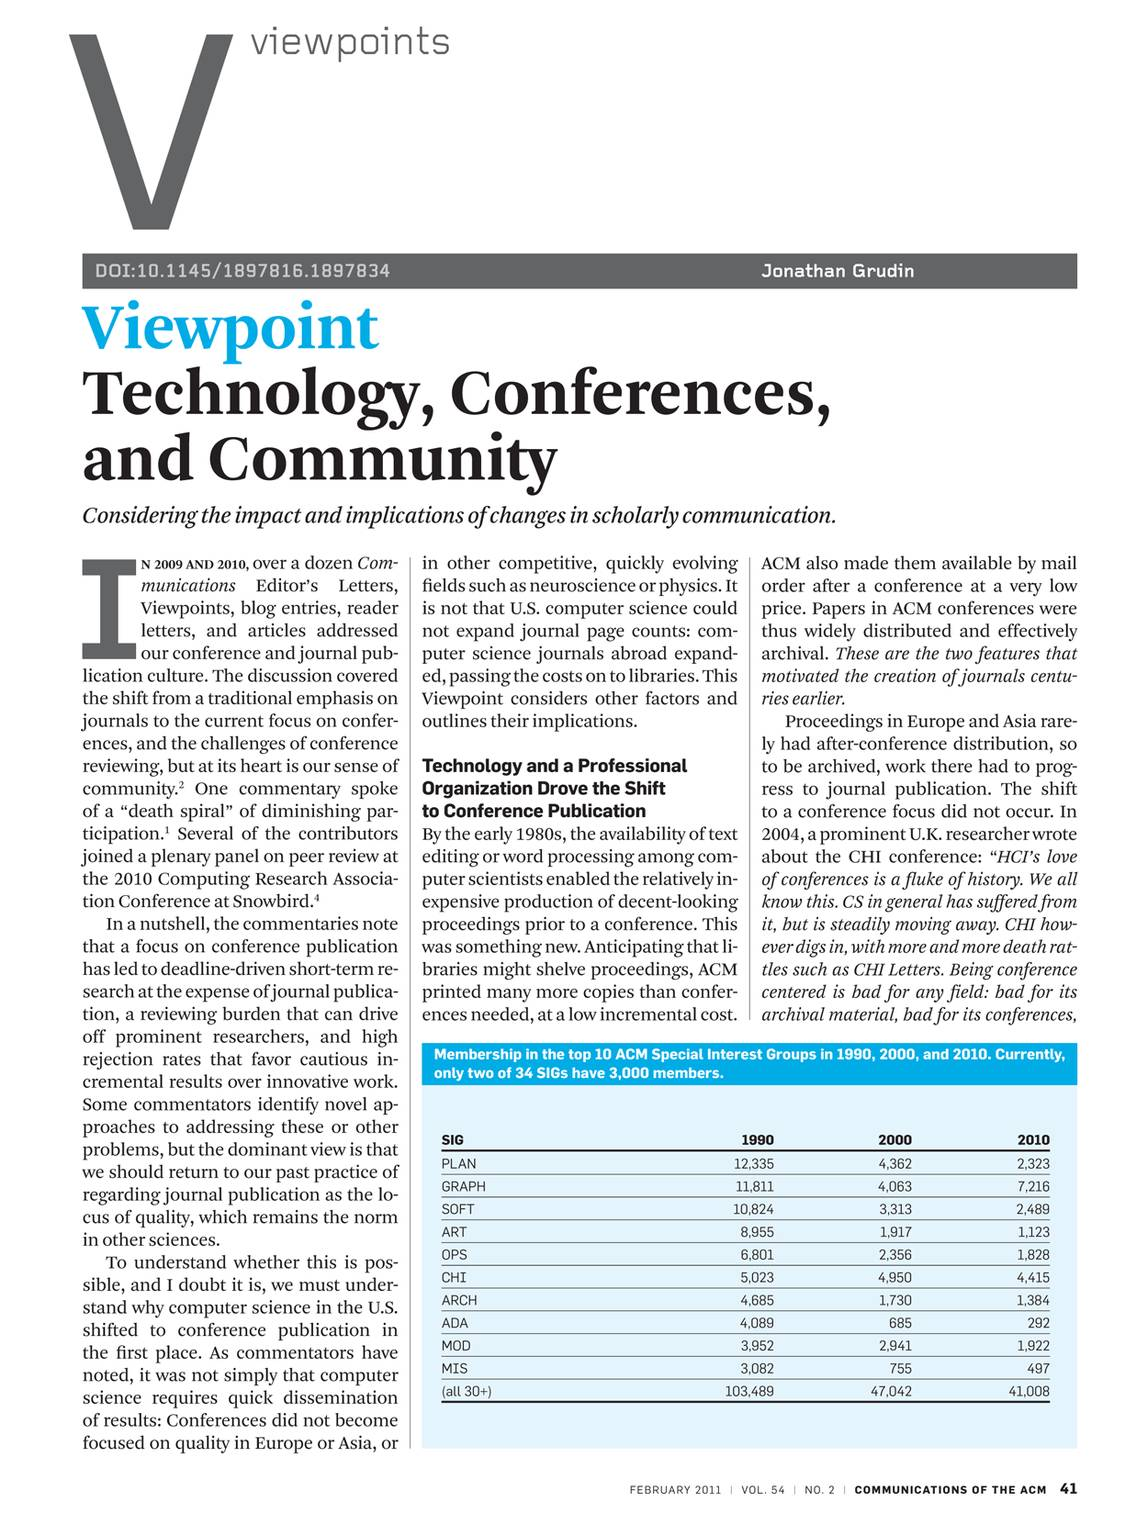 Communications - February 2011 - page 42